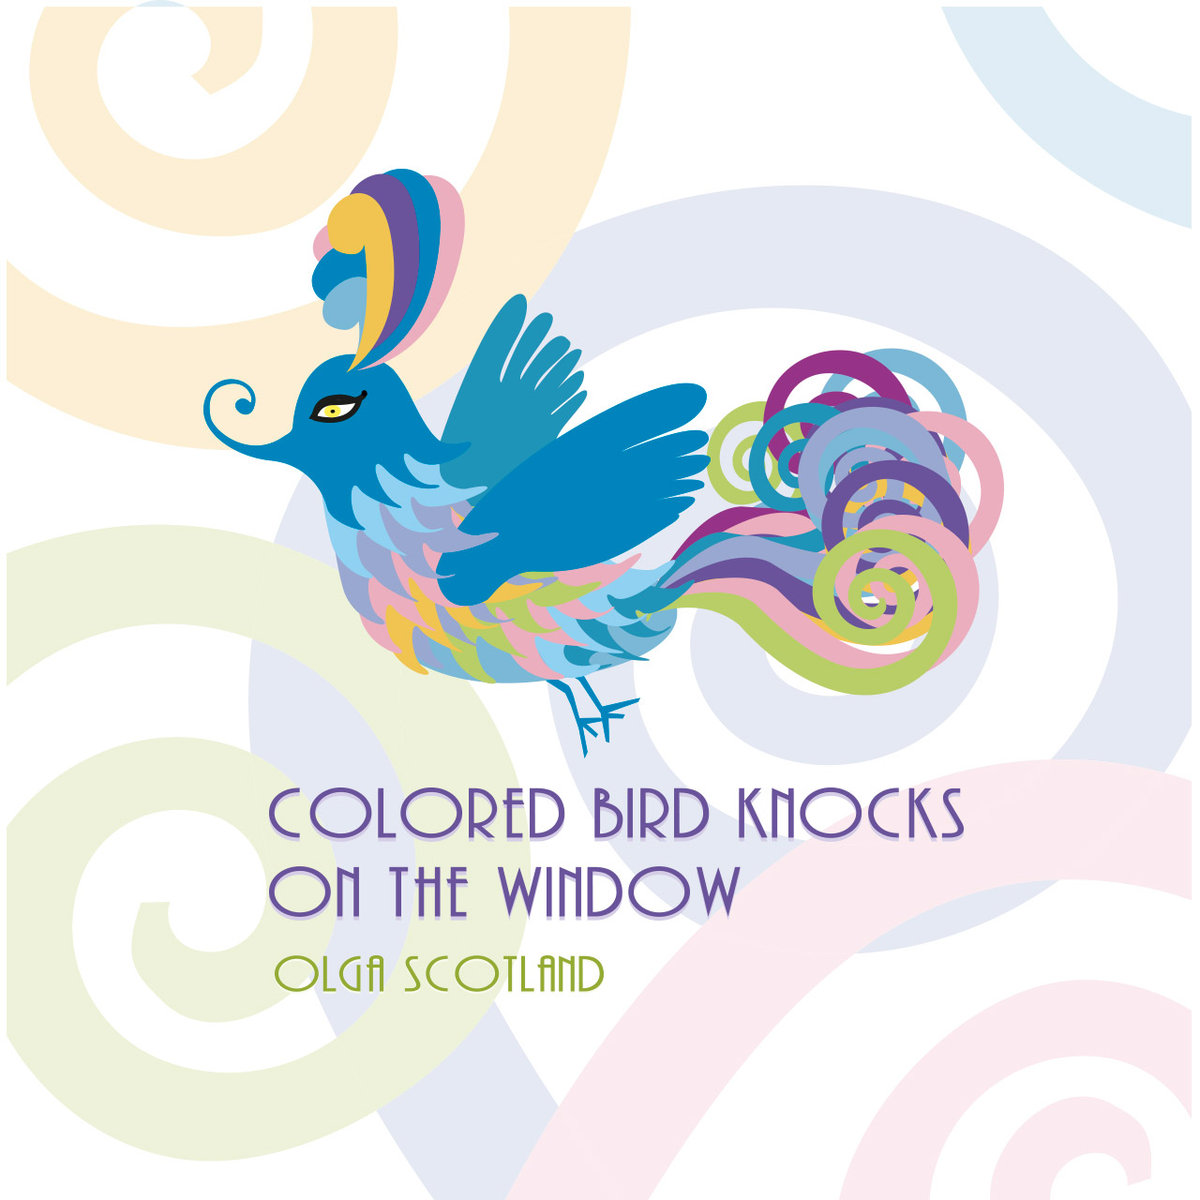 Olga Scotland - Story @ 'Colored Bird Knocks On The Window' album (soundtrack, ambient)